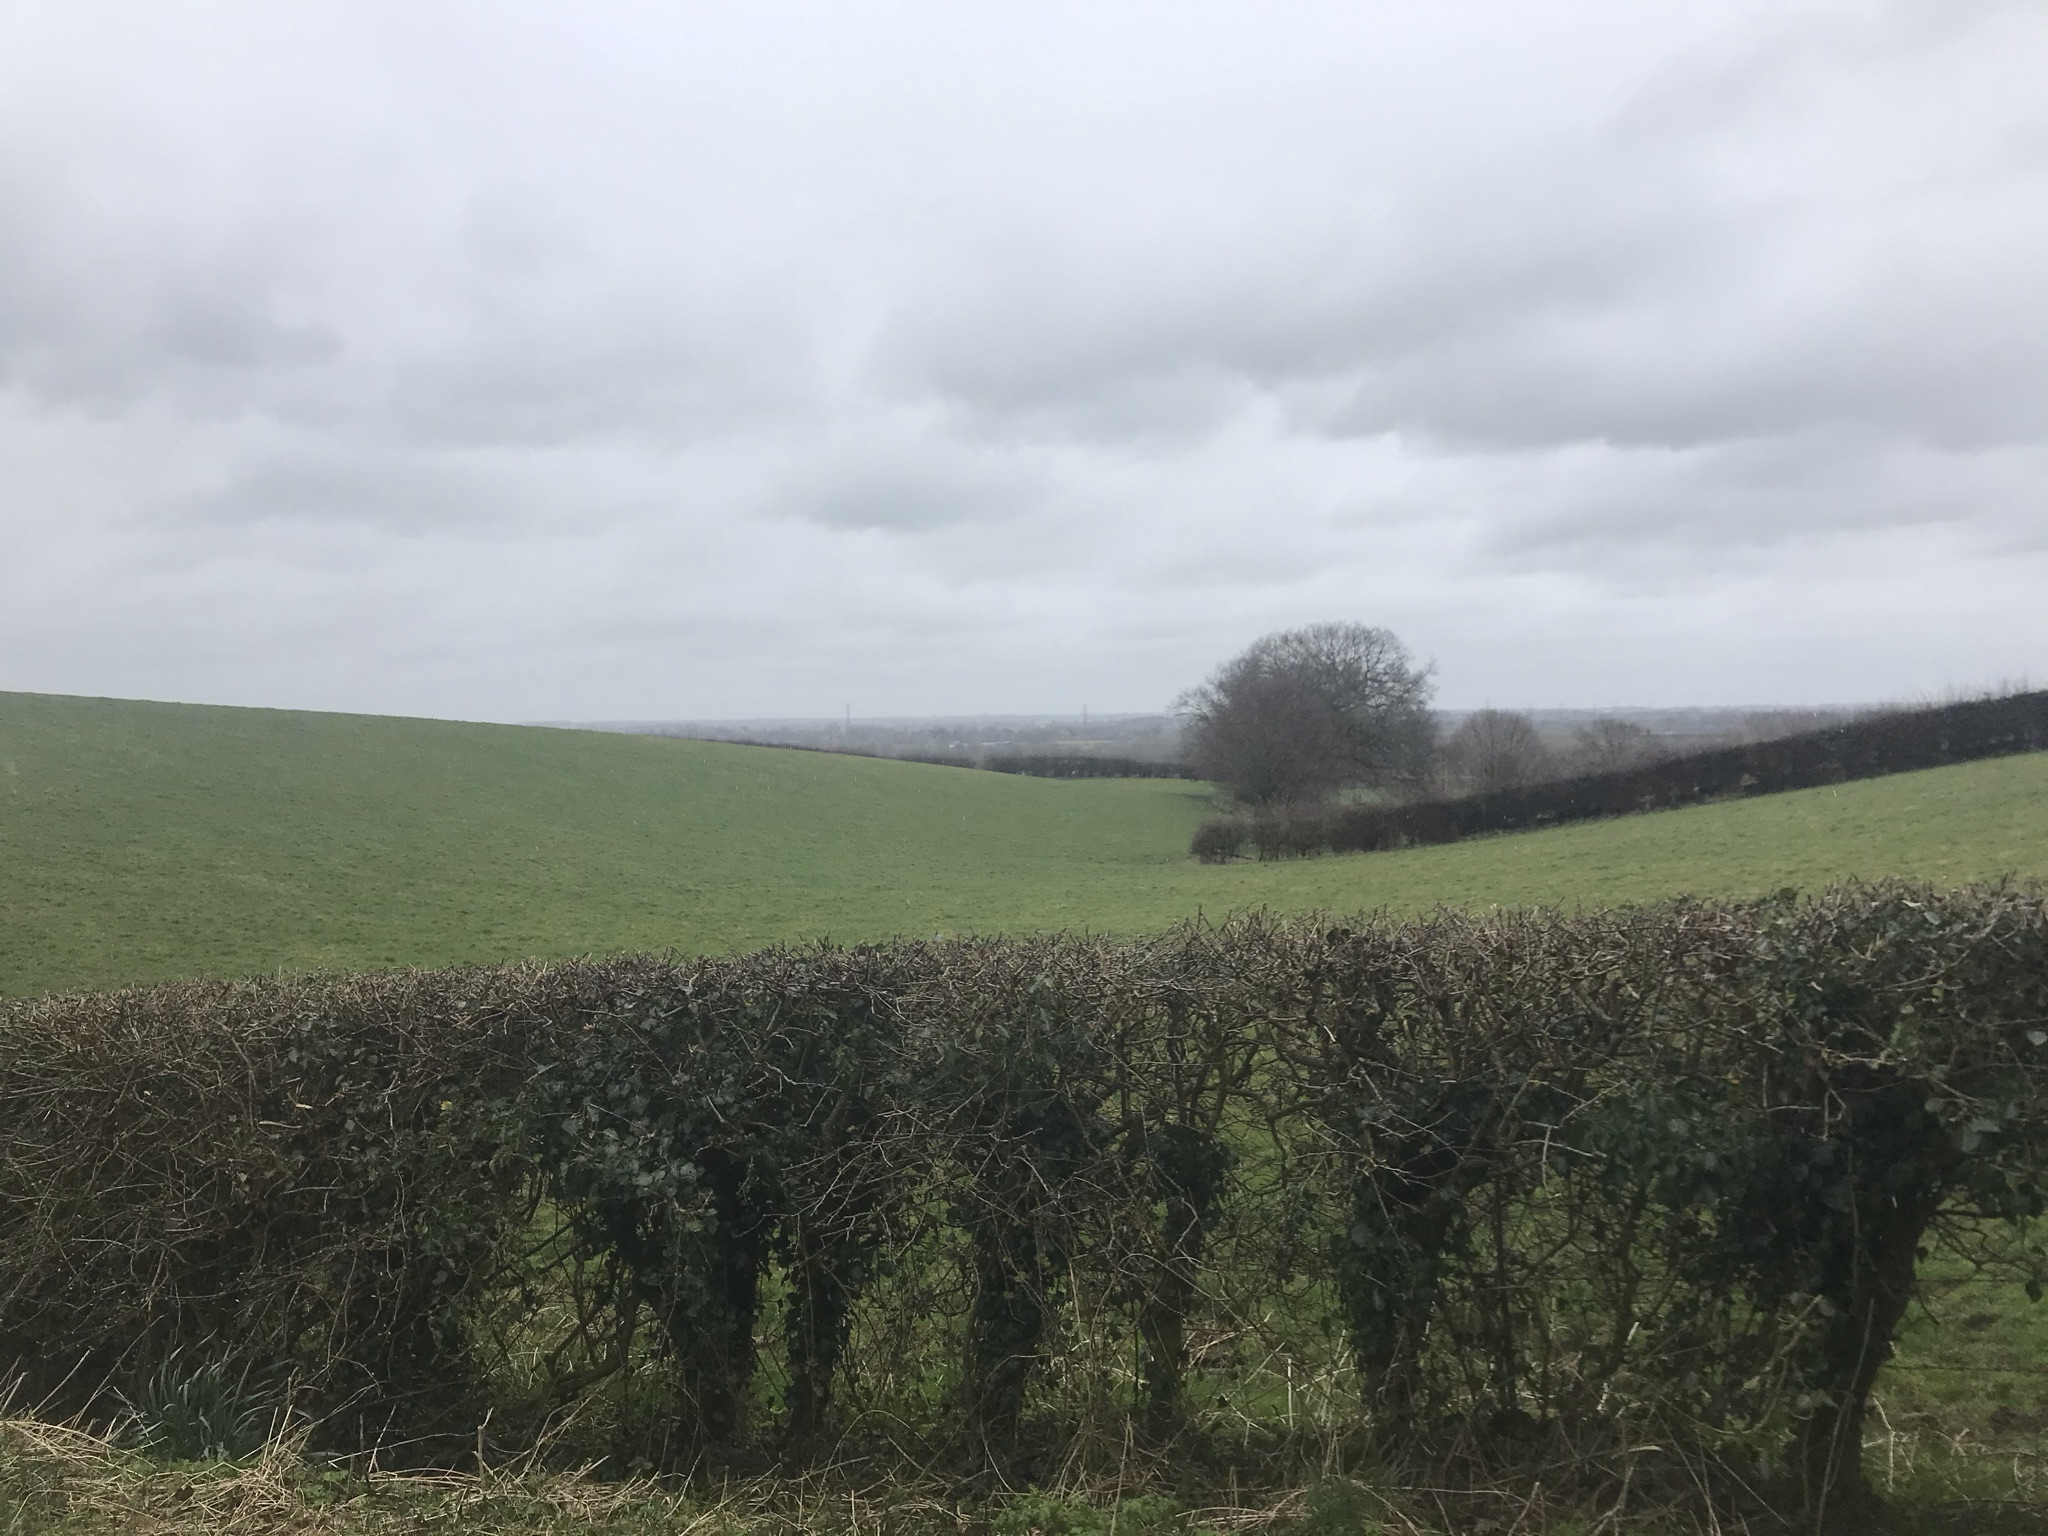 Green rolling field with bare hedges and trees, the sky is cloudy and grey